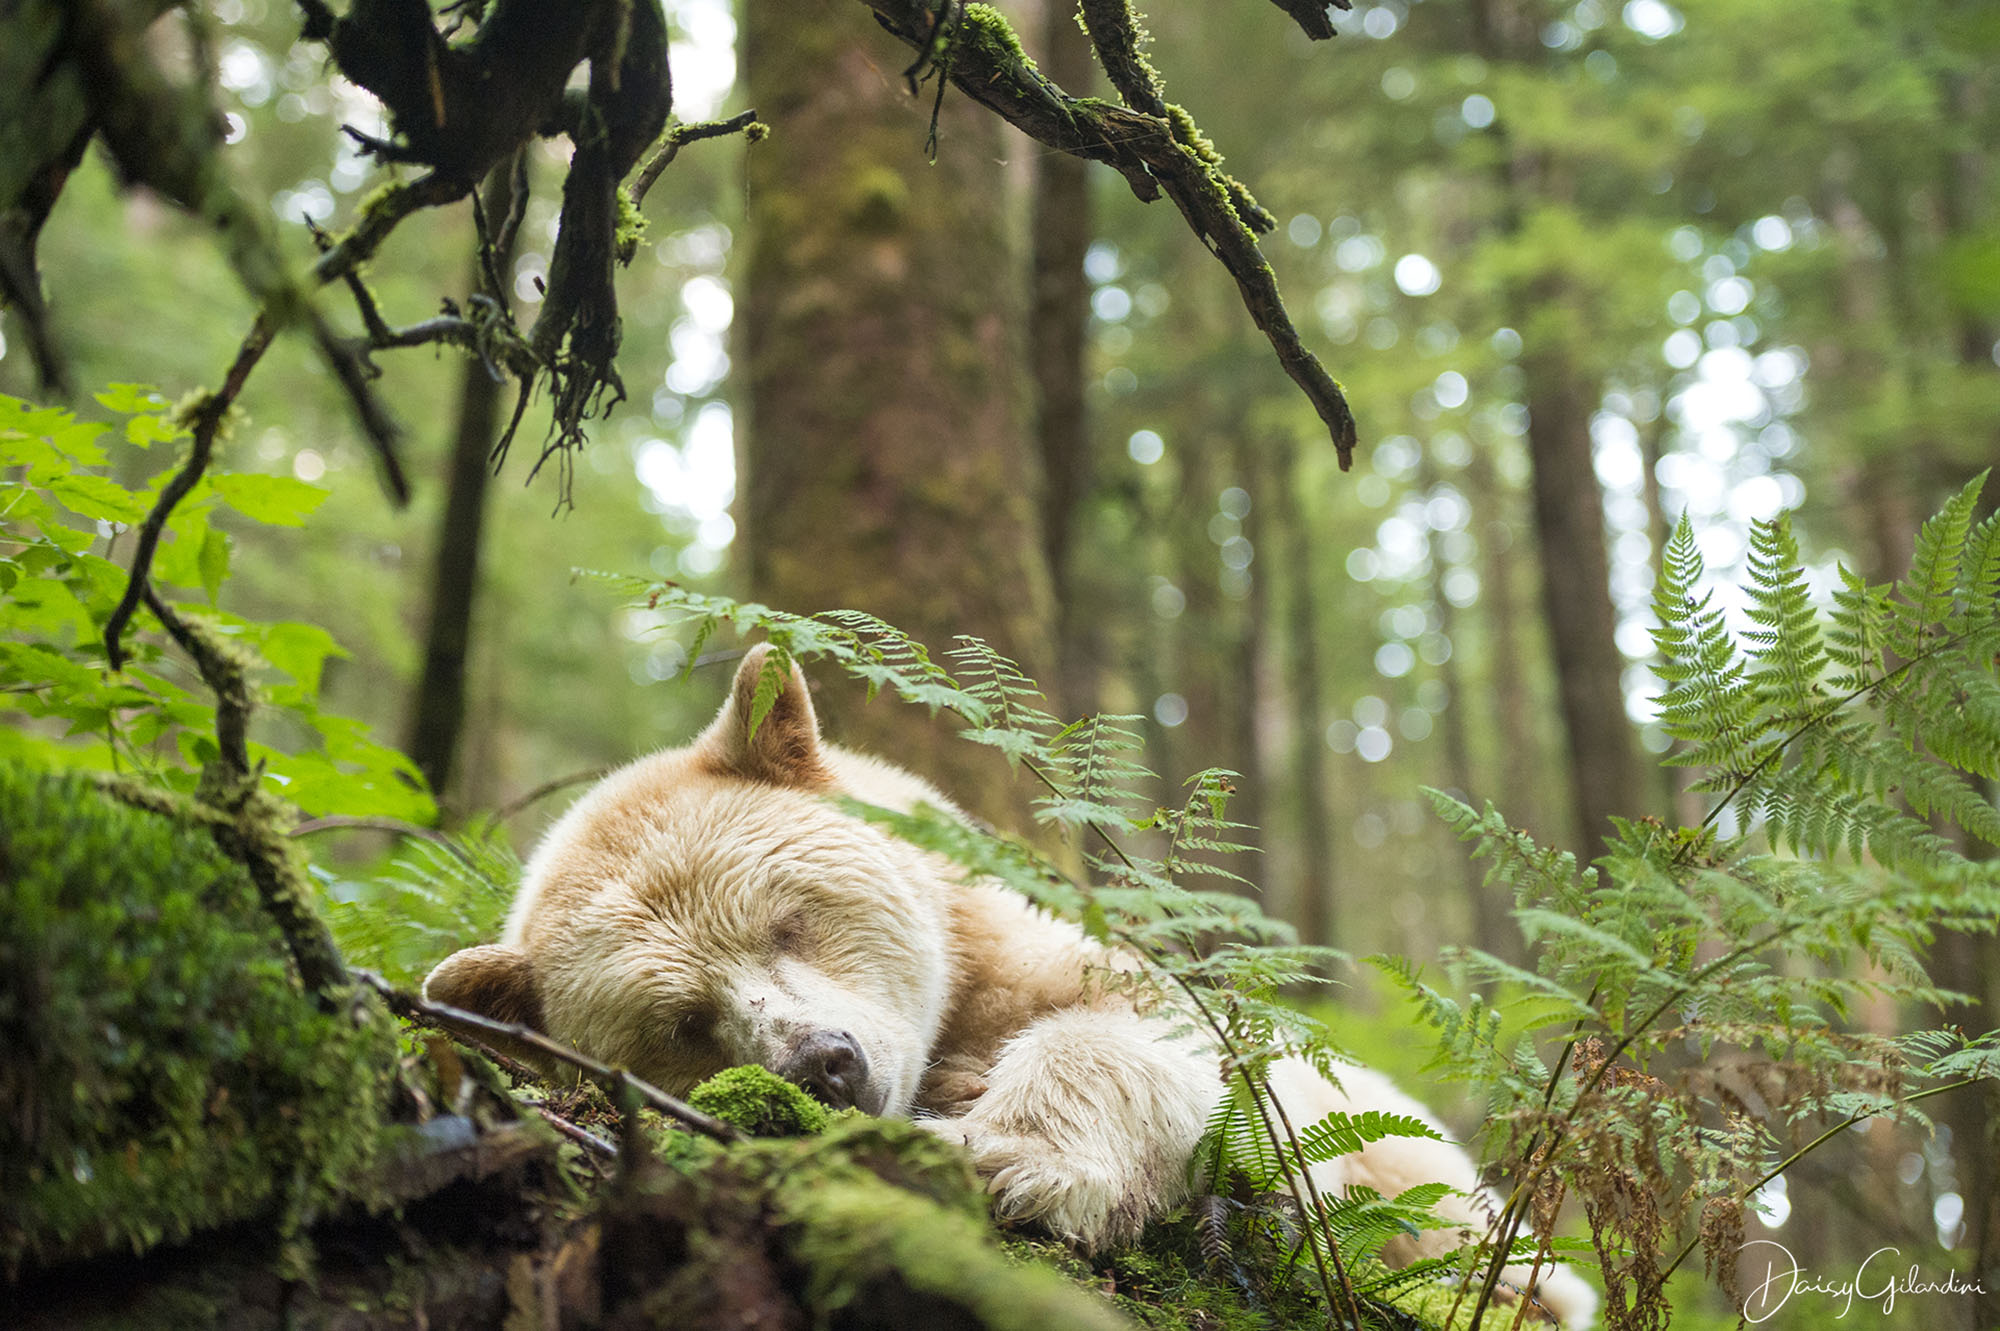 Spirit bear sleeping in the forest (Daisy Gilardini)